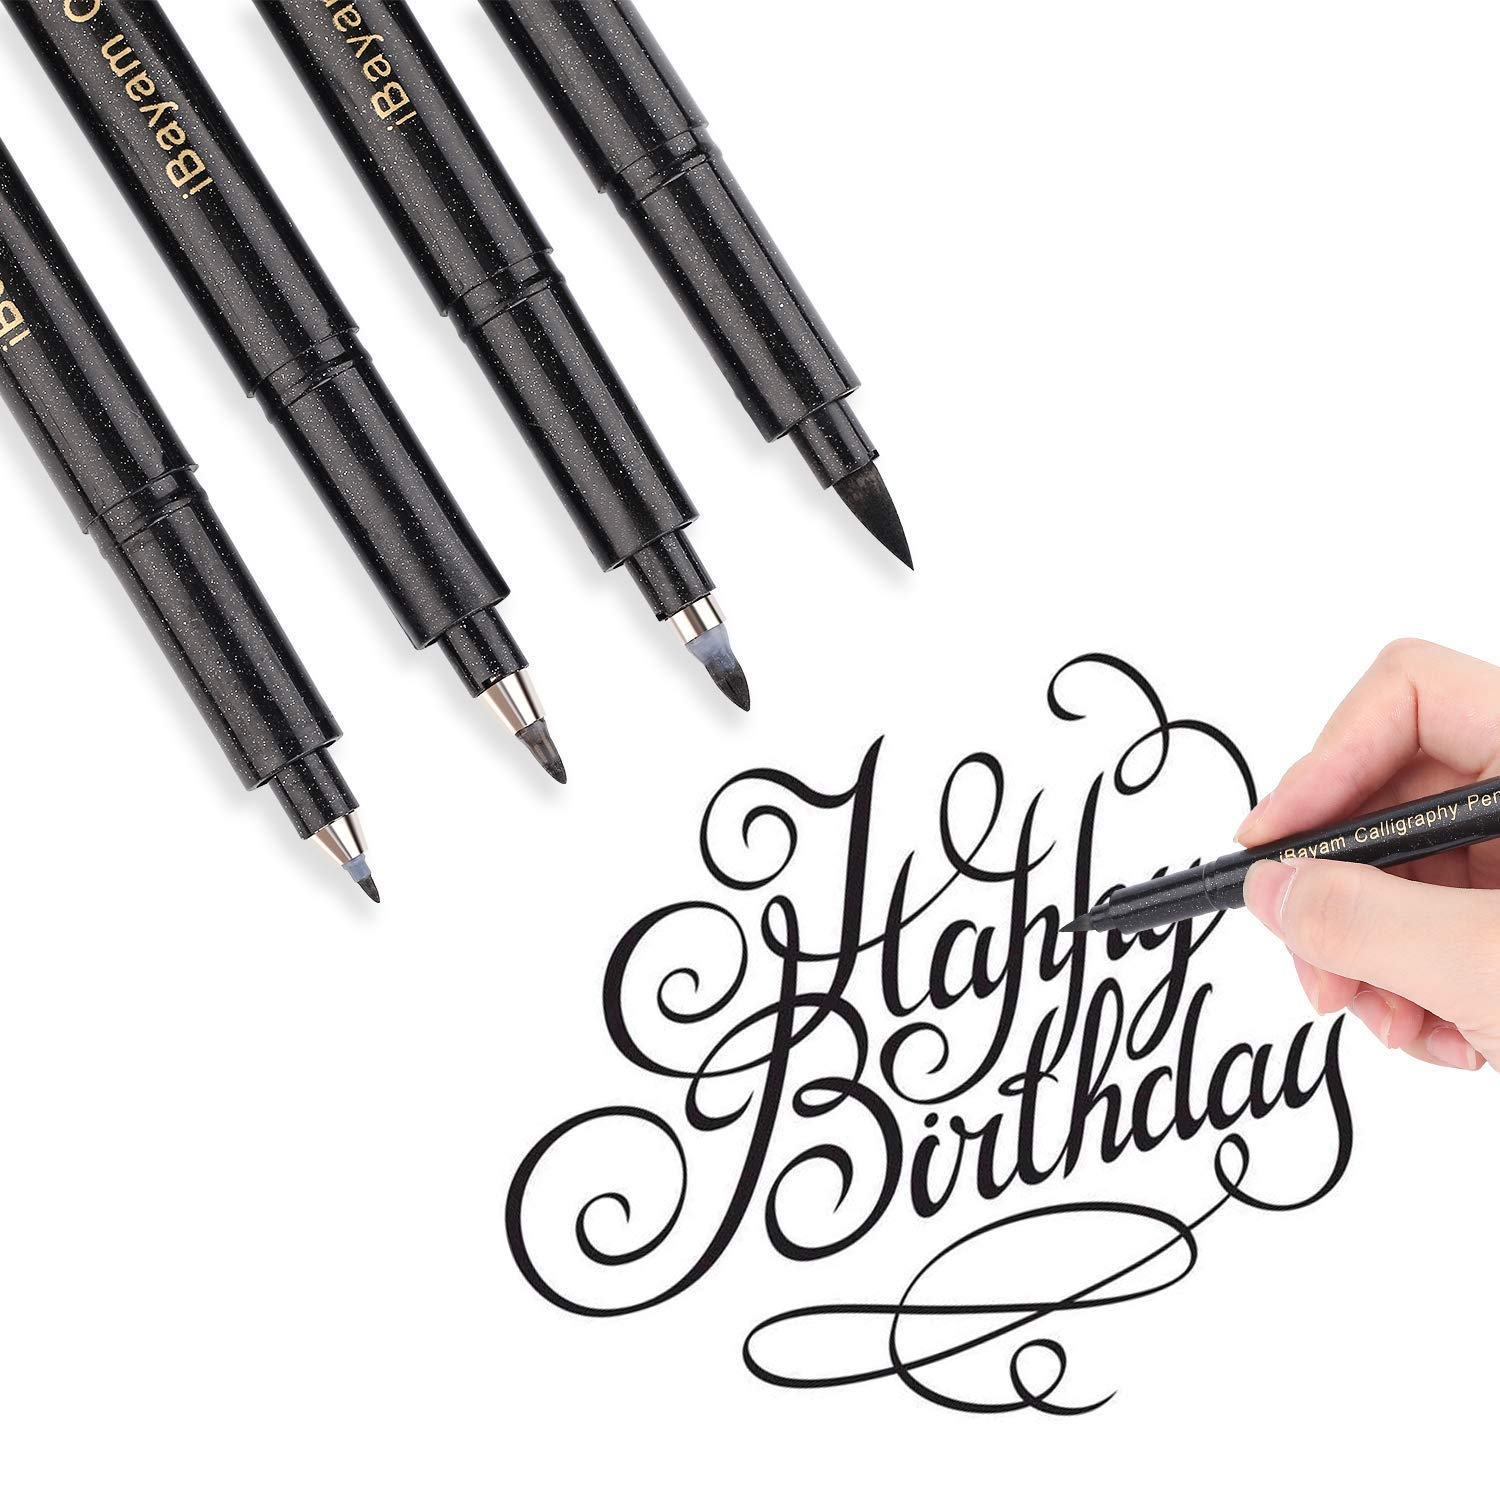 Refillable Hand Lettering Pen, Brush Pens Markers for Calligraphy Beginners Signature Writing Art Drawing Illustration, Design - 4 Sizes Black Ink Pens Art Marker Set by iBayam (Image #5)